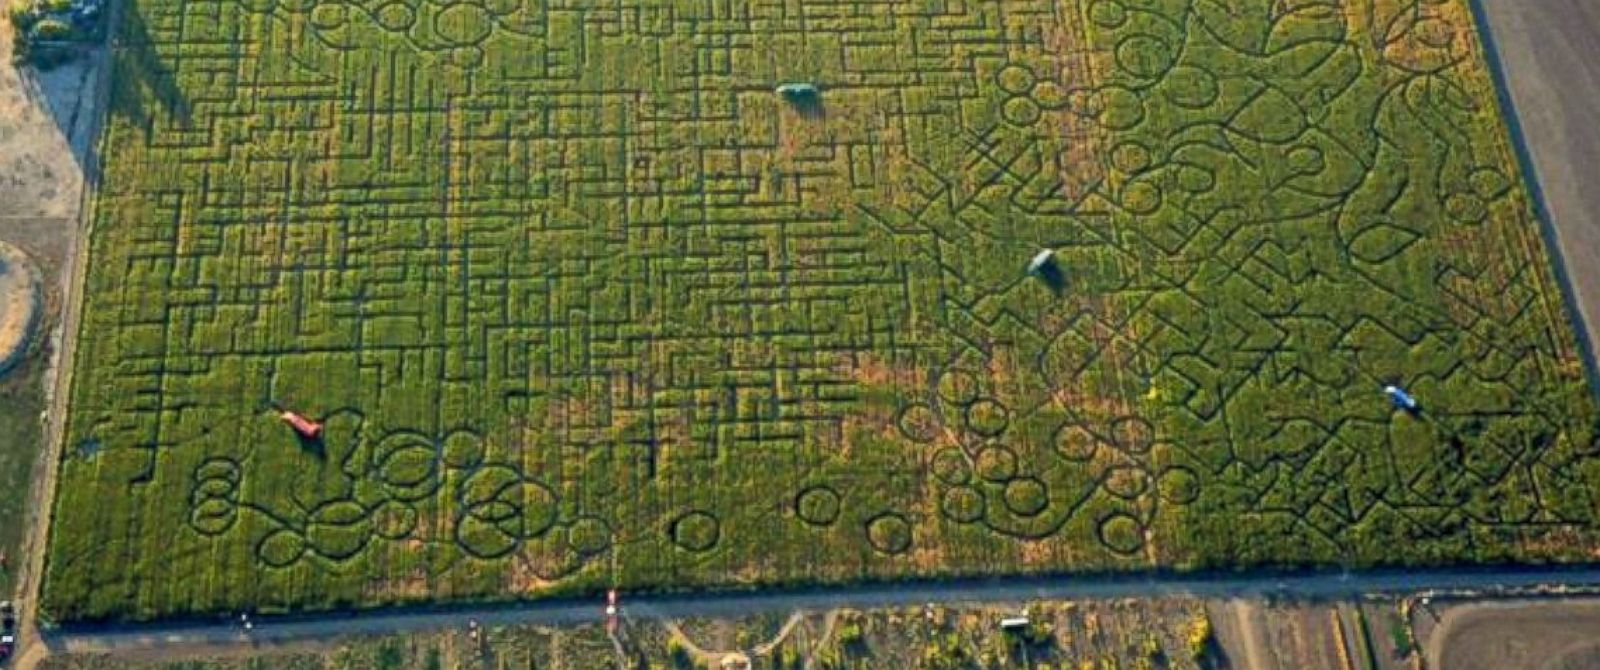 911 Calls From People Lost in World's Biggest Corn Maze ...